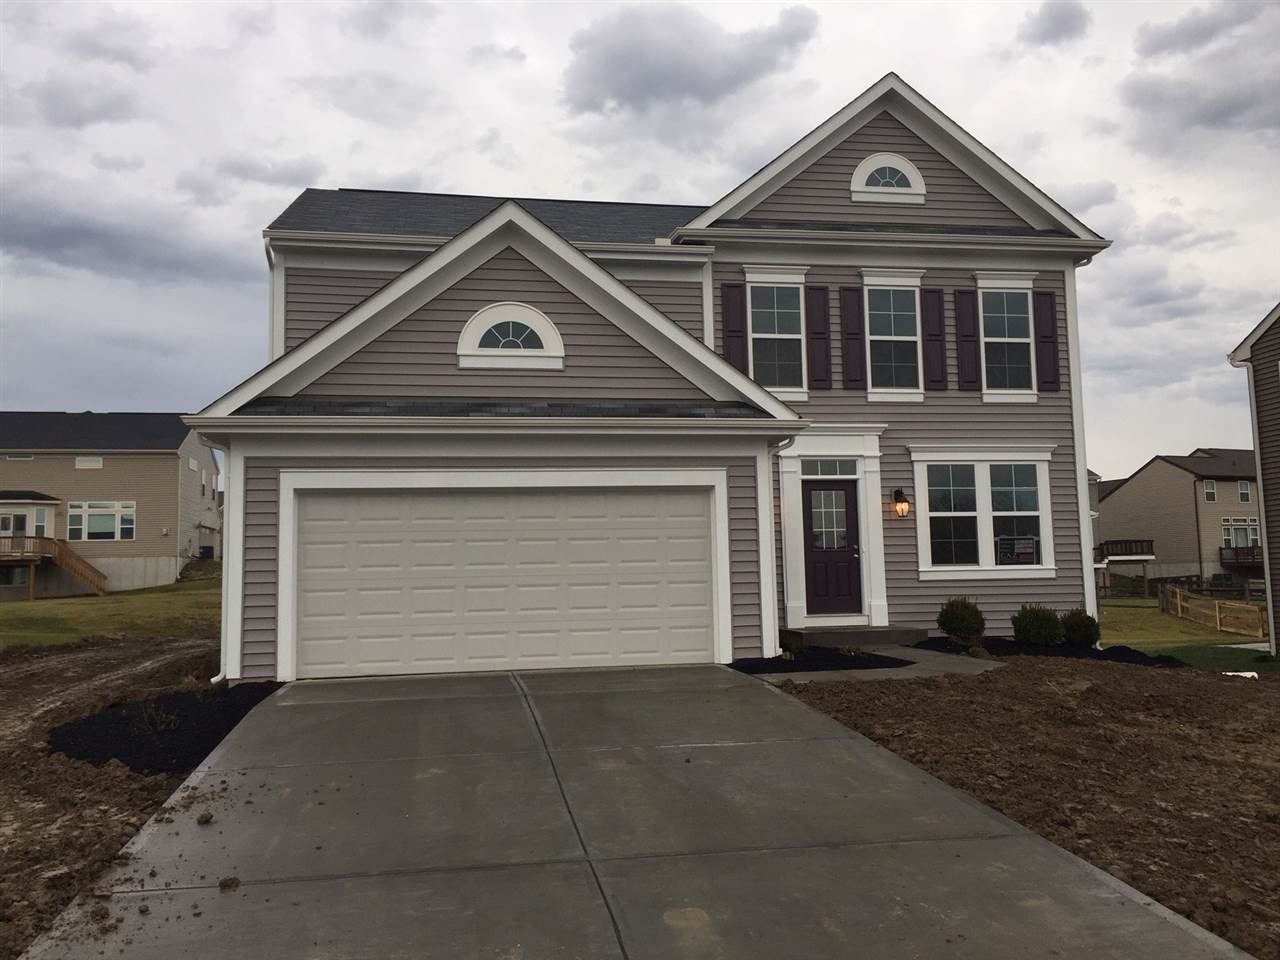 Photo 1 for 1394 Poplartree Pl Independence, KY 41051